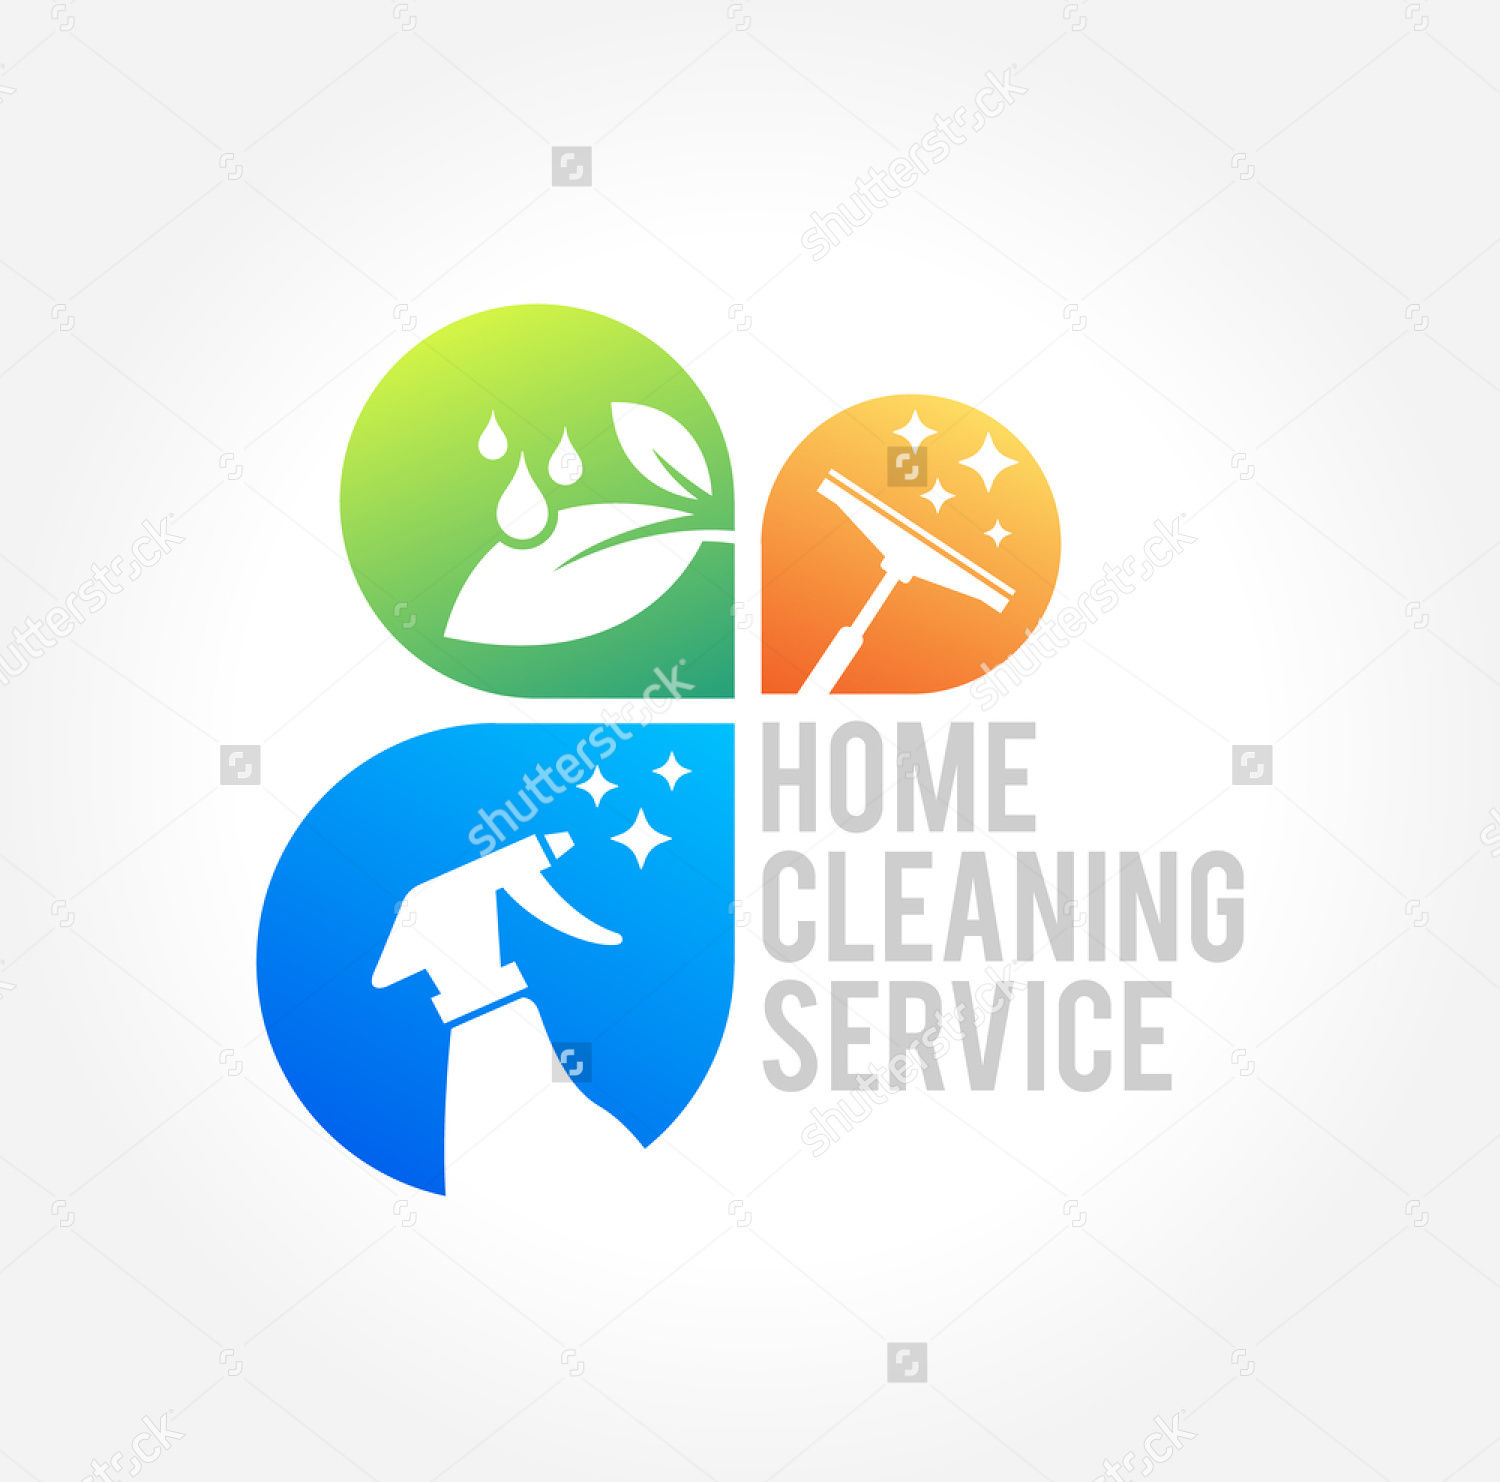 business cleaning service logo